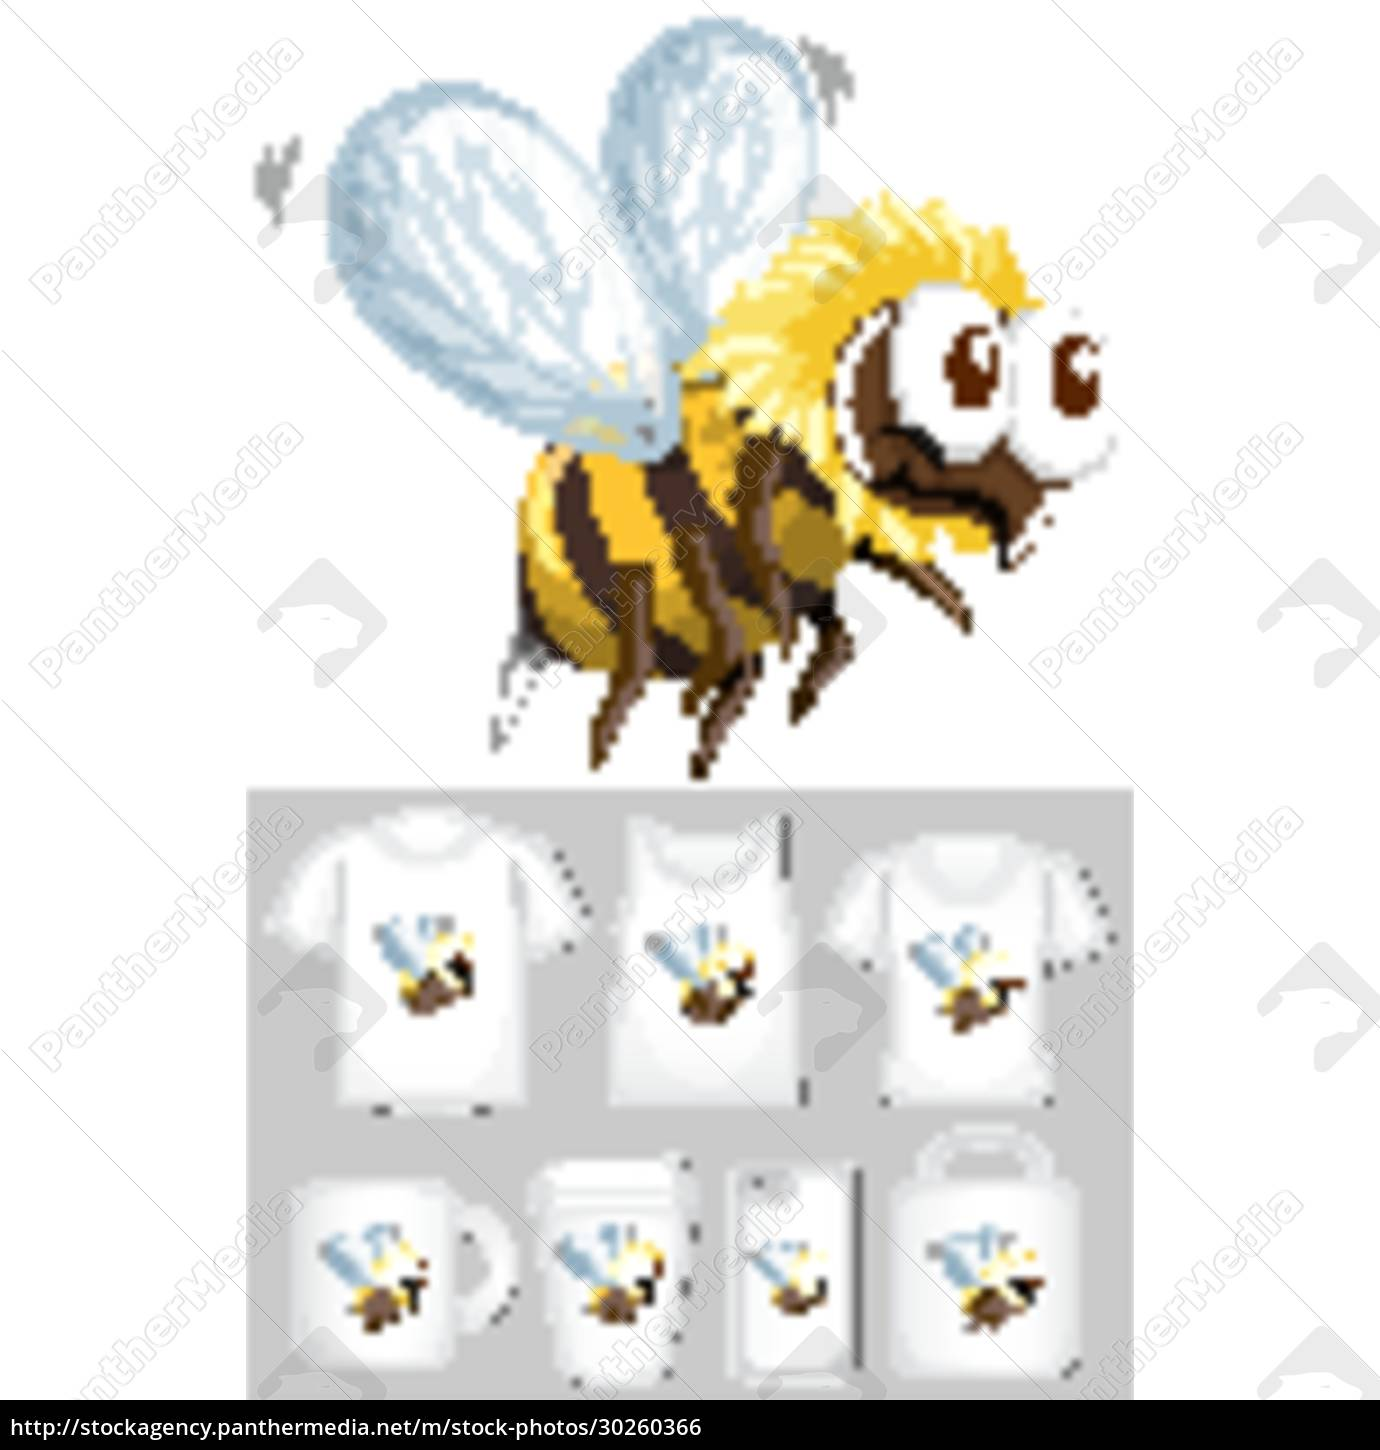 graphic, of, bee, on, different, product - 30260366